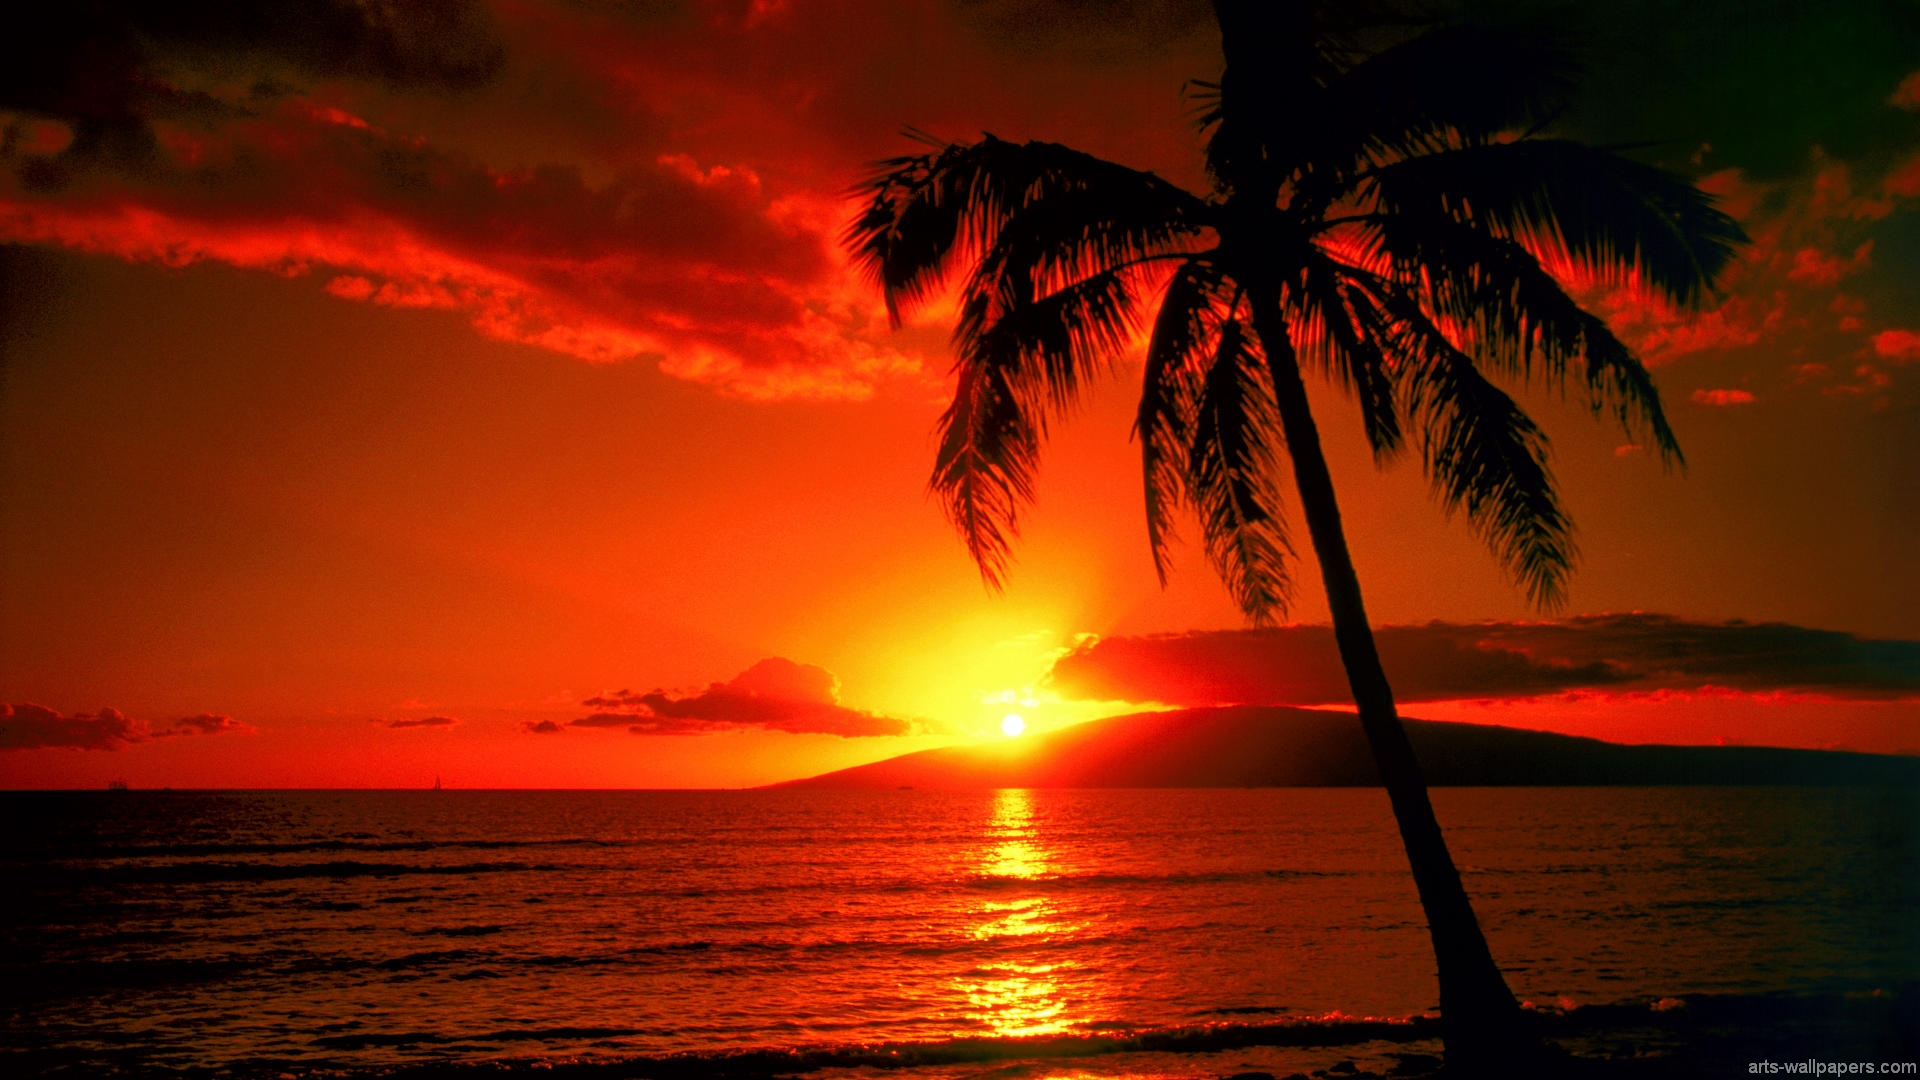 Sunrise Sunset Year Best Wallpaper Collection 2015 1920x1080